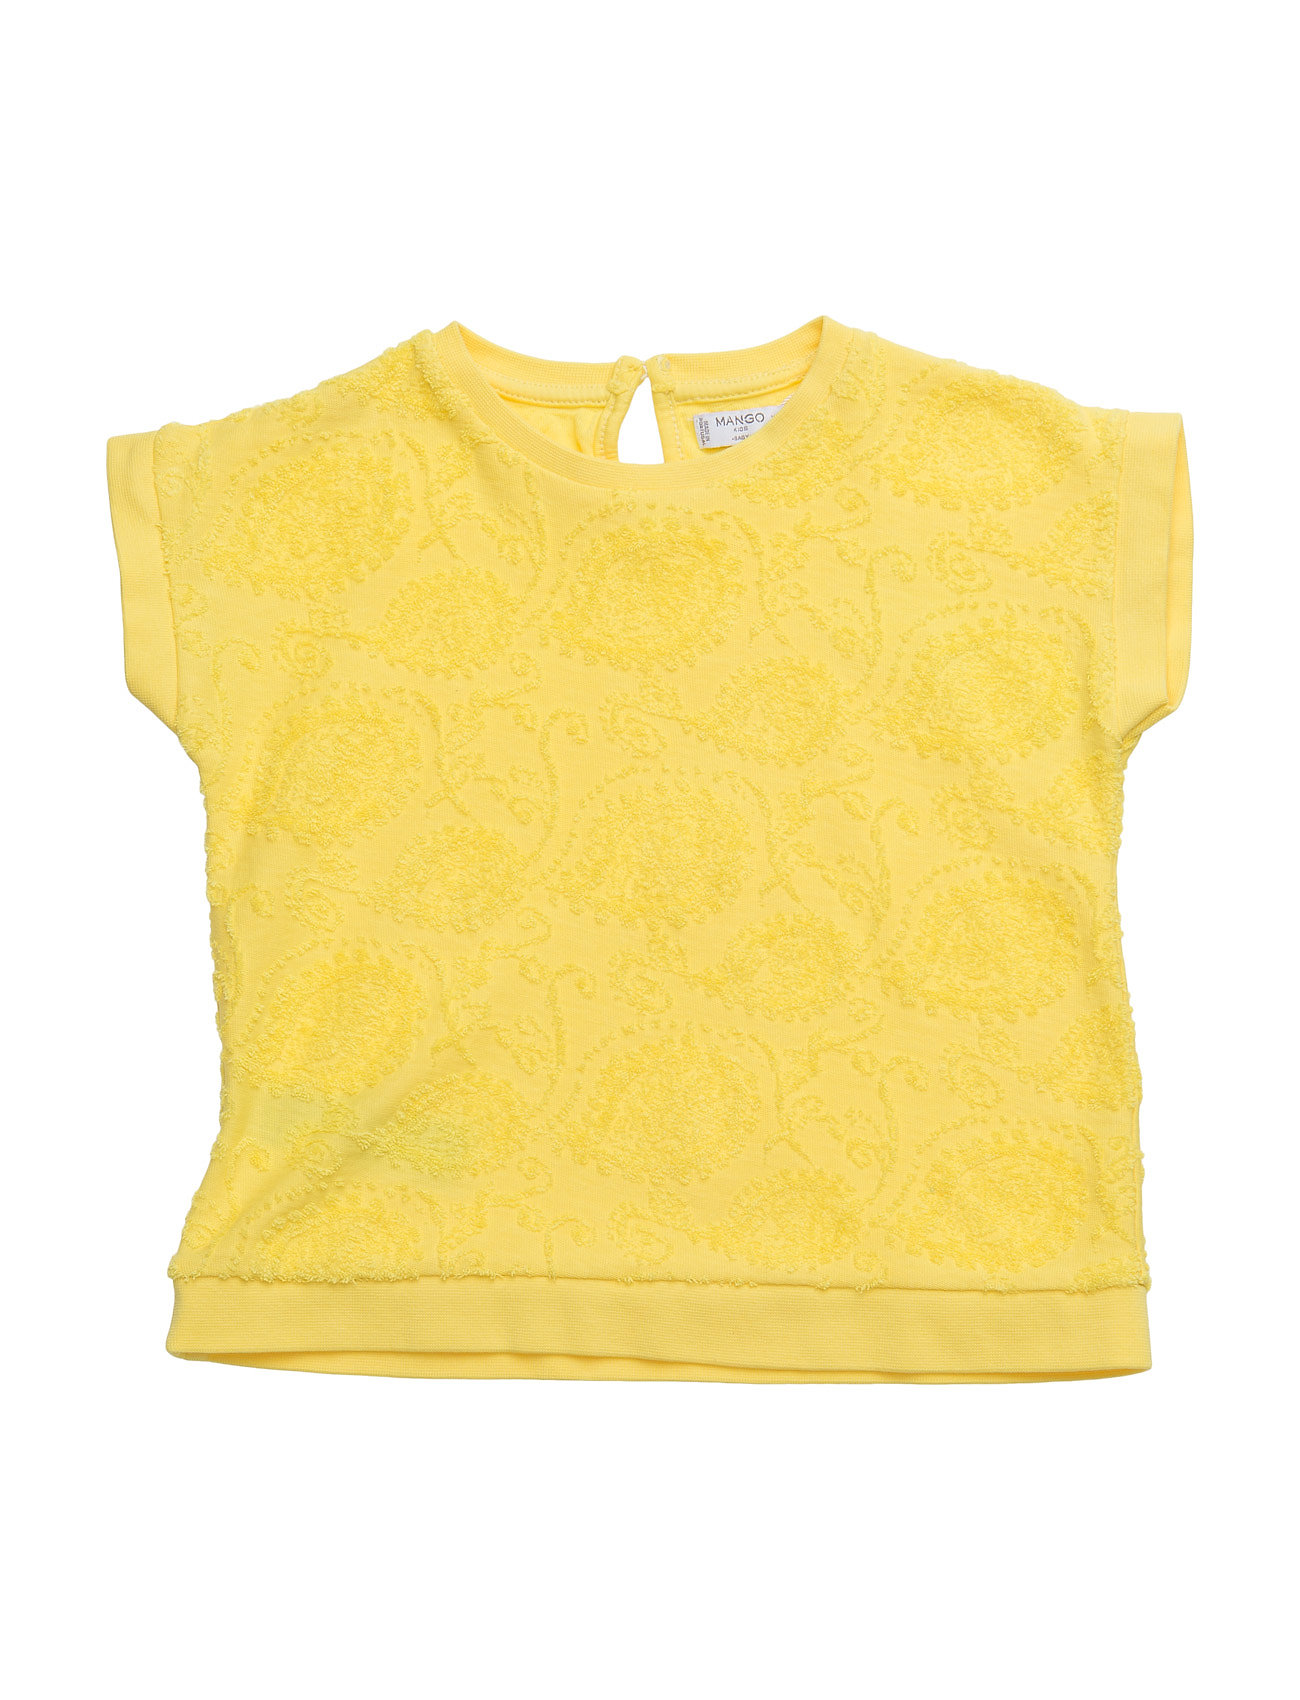 Textured Cotton T-Shirt Mango Kids Kortærmede t-shirts til Børn i Gul